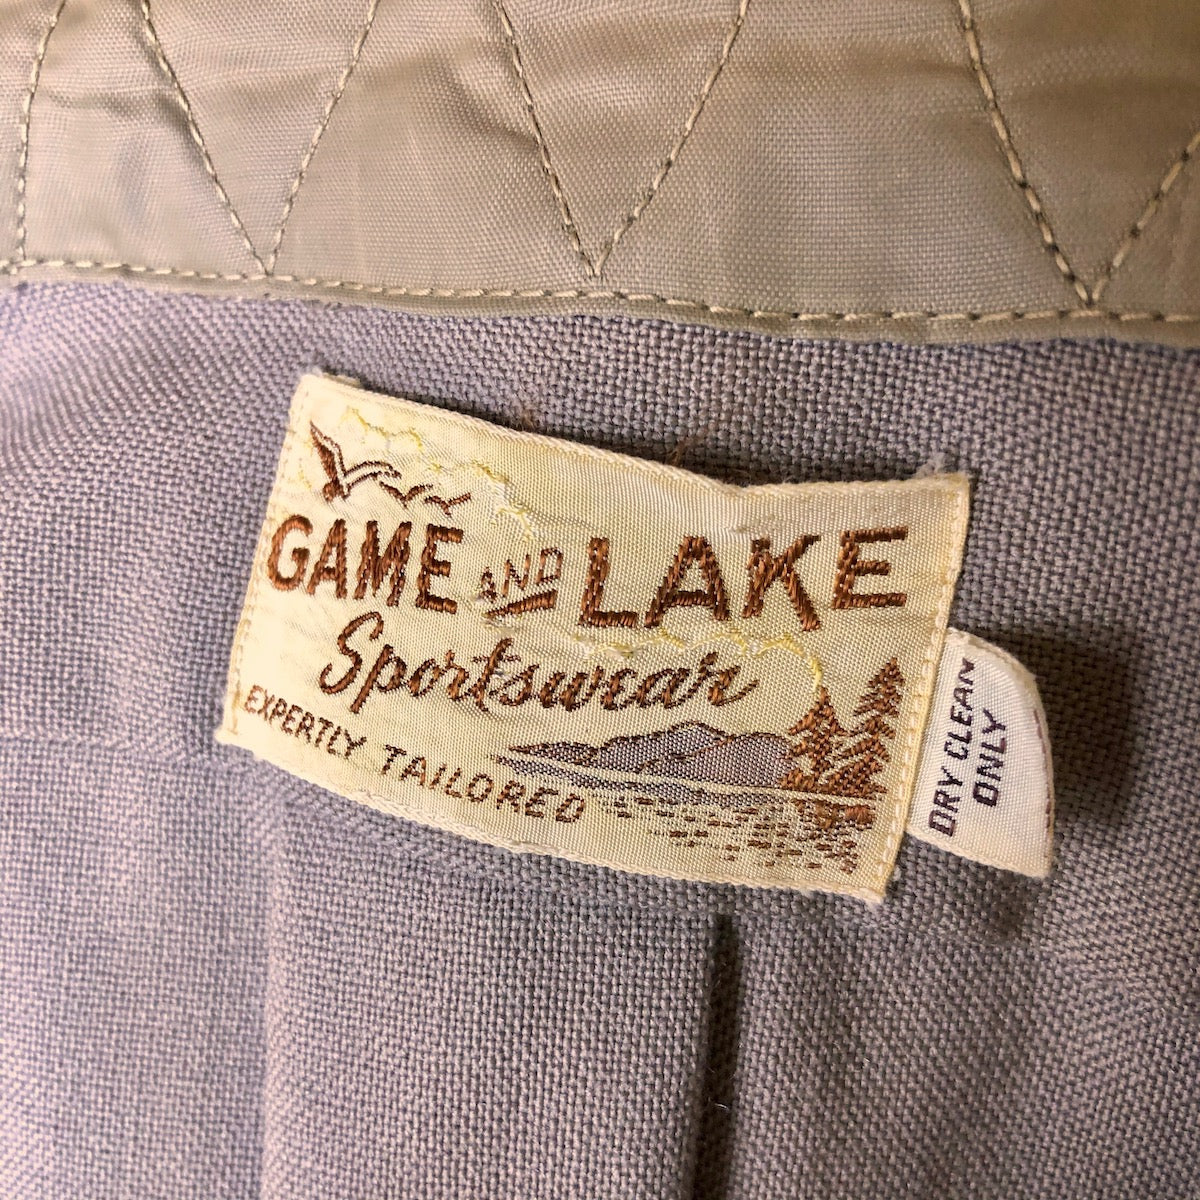 1950's Game and Lake Sportswear Shirt